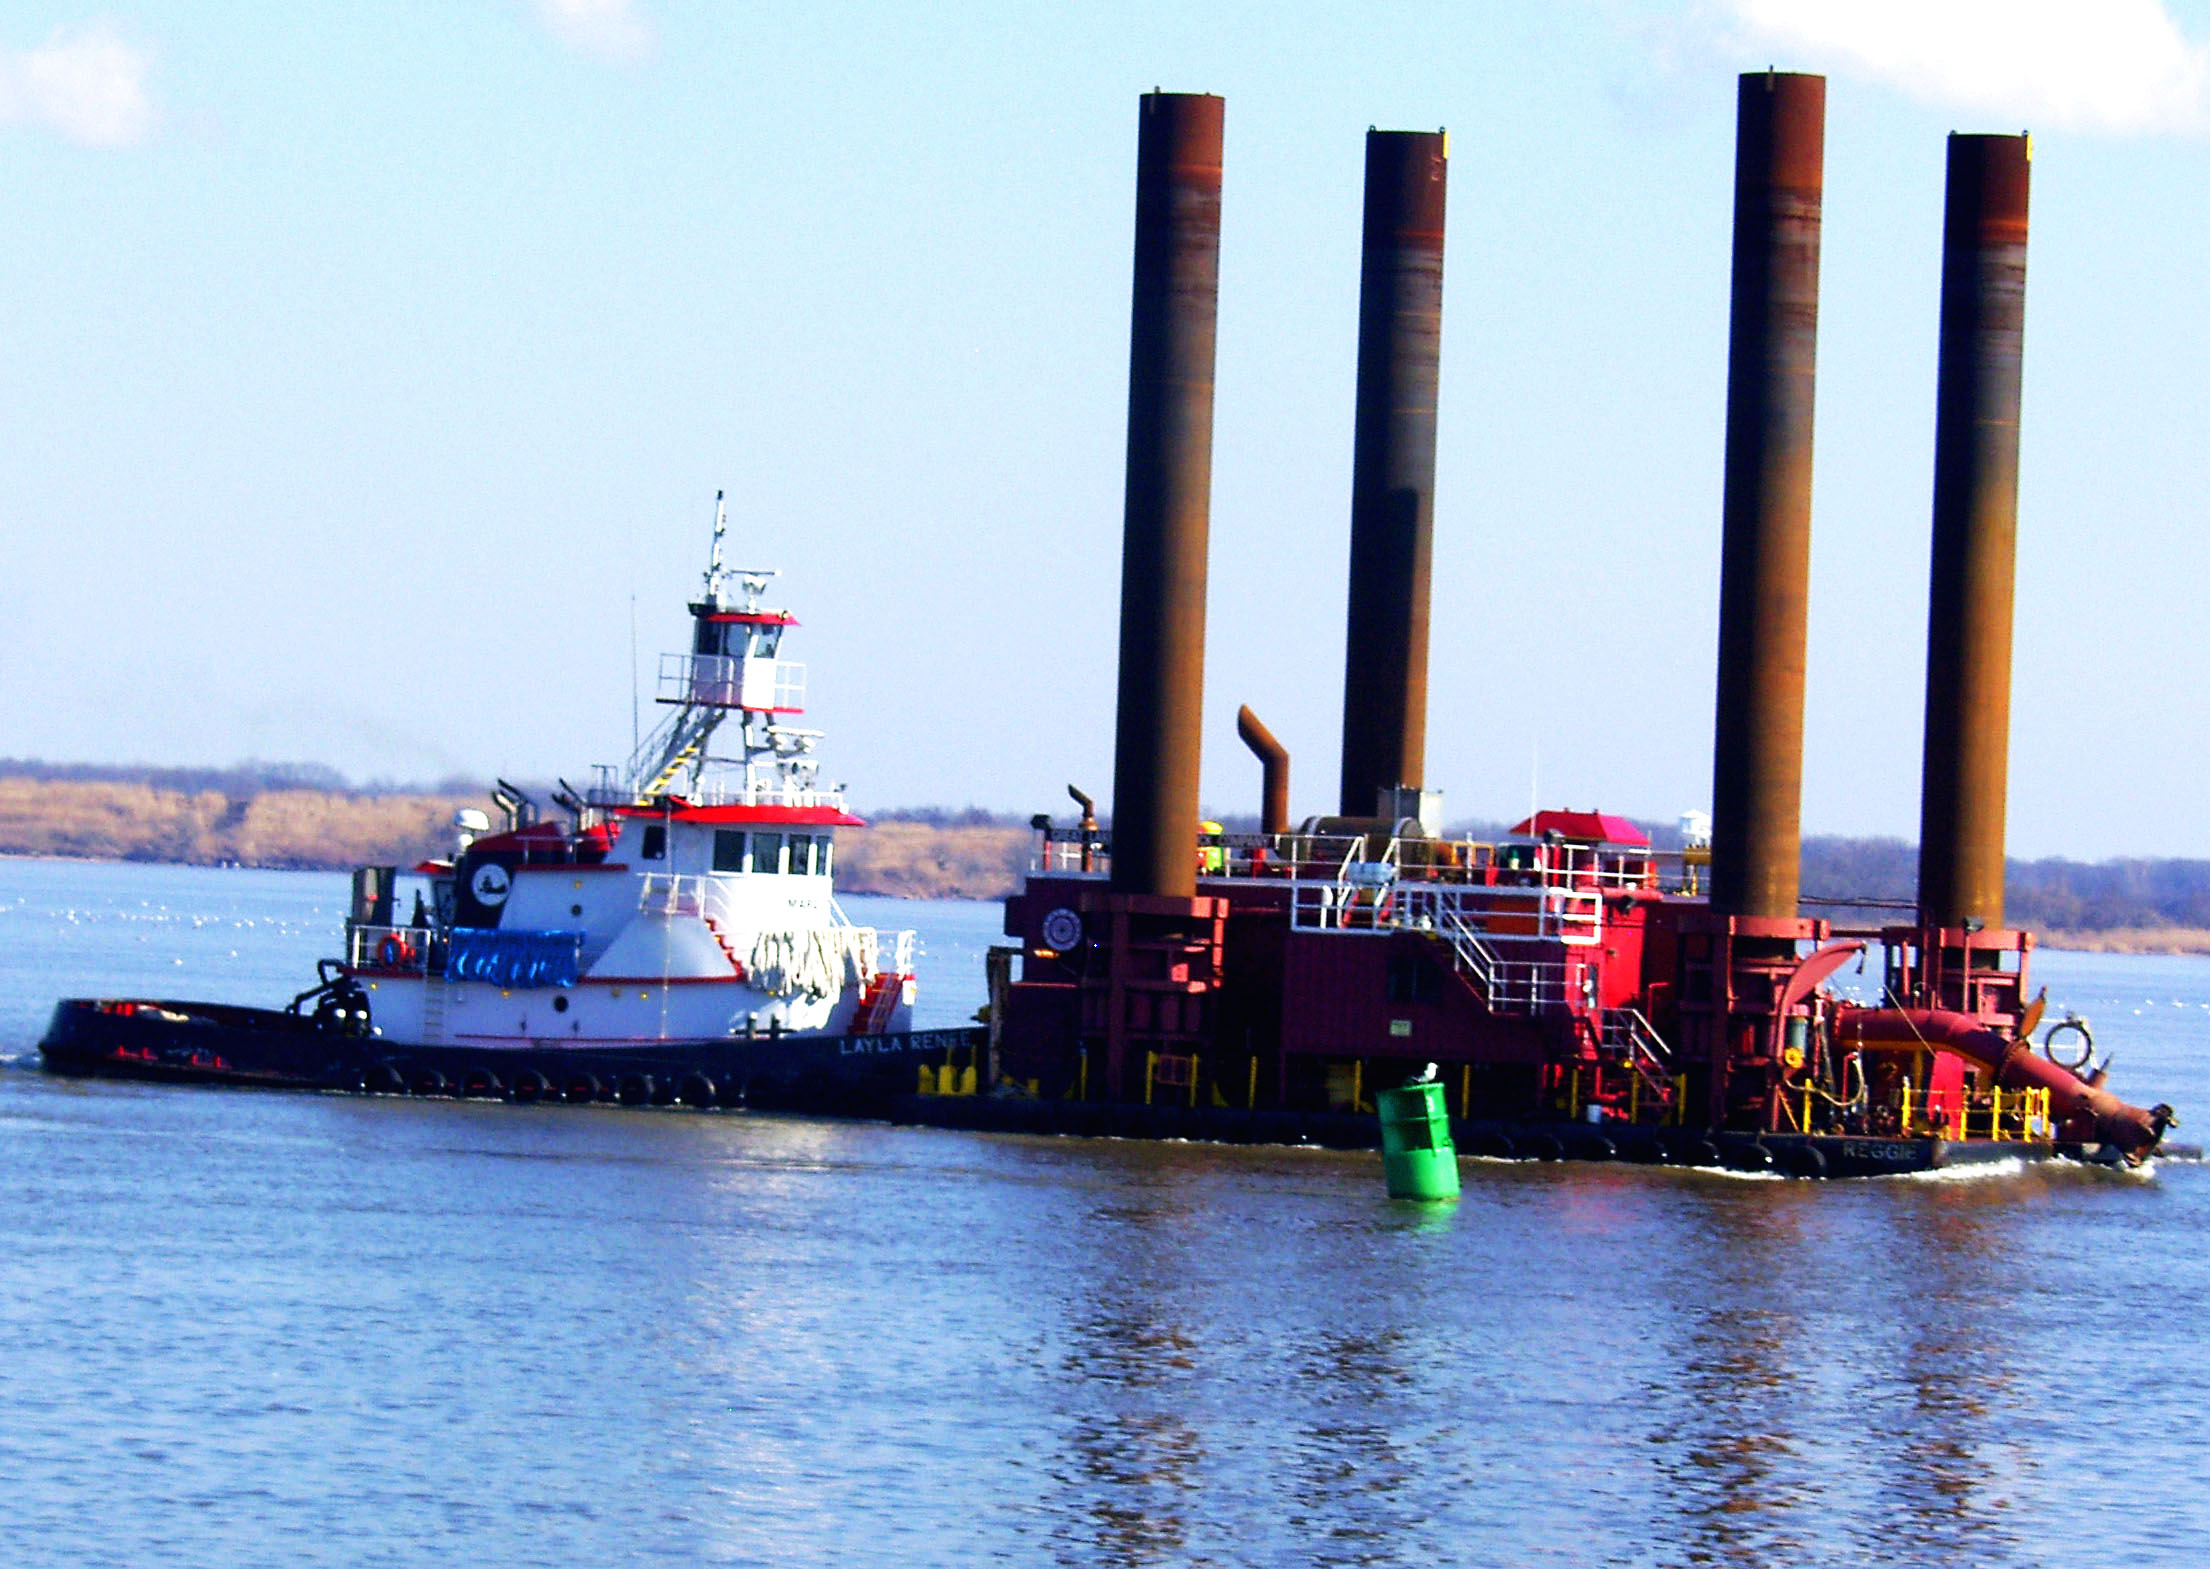 Tug Pushing River Dredger